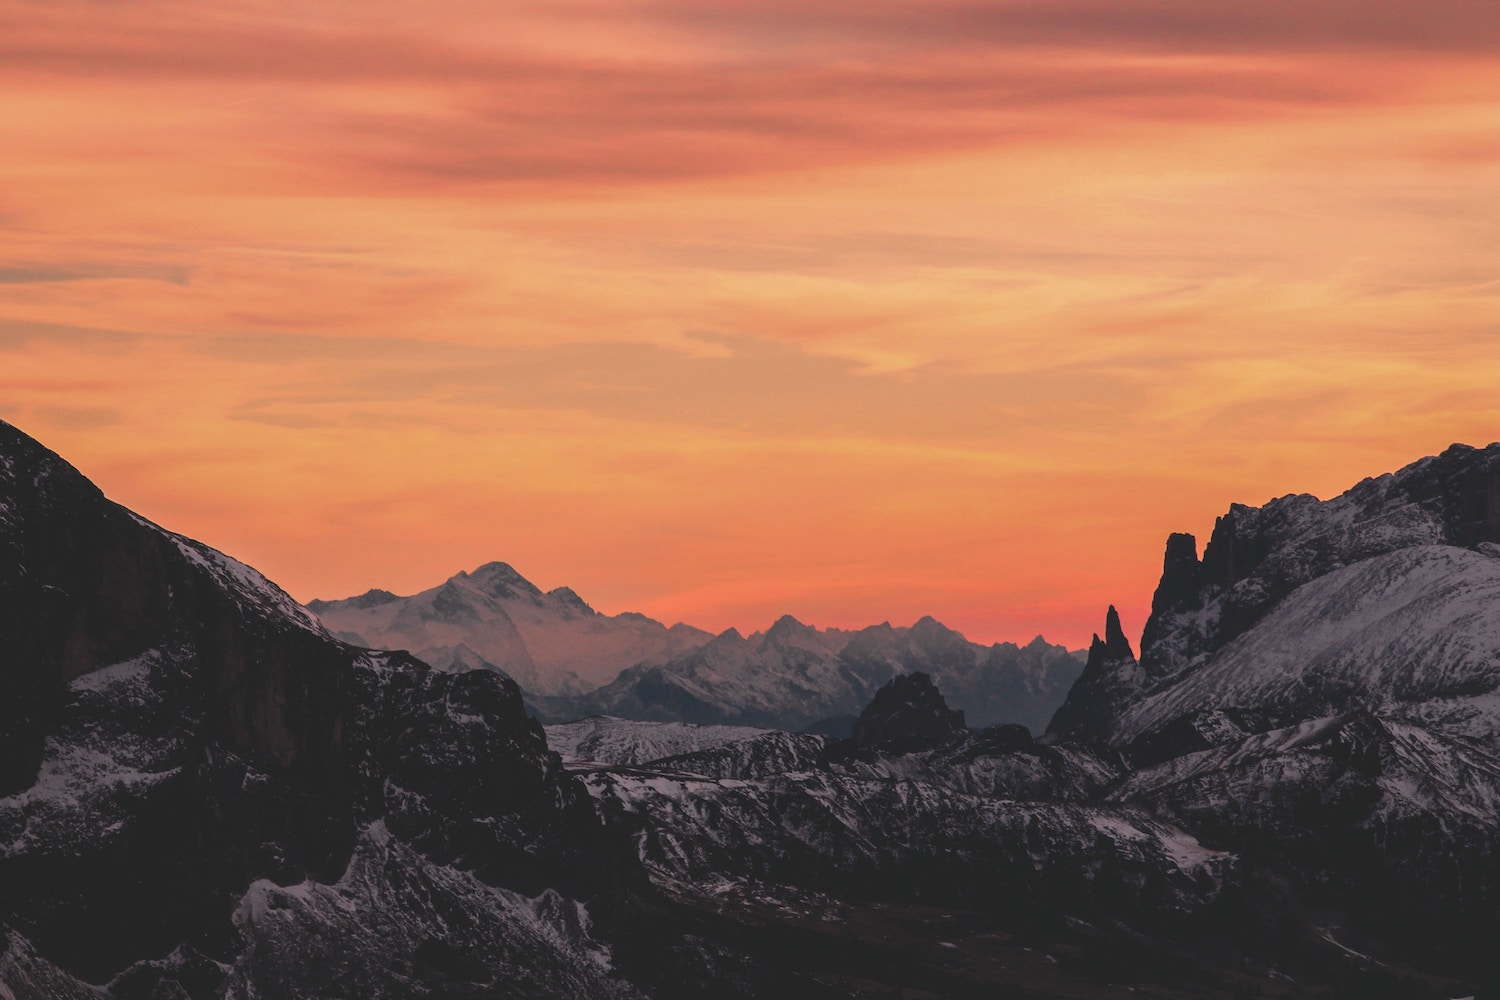 An image of mountains